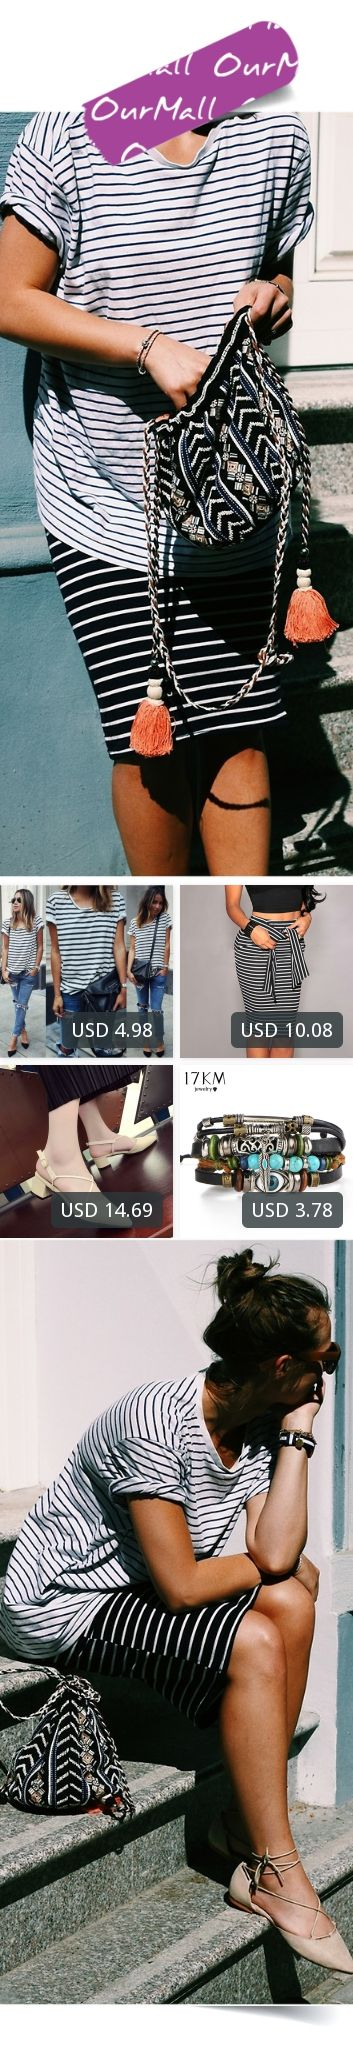 This is Ola Szymanska's buyer show in OurMall;  1.Summer Style O Neck Women White Black Stripe Shirts Blusas Short Sleeve Female 2.Slim Bodycon Pencil Skirts Women Lady Striped Skirt Female Knee-Length Bandage 3.women shoes Spring Fashion Pointed Stilettos women Pumps High up ... please click the picture for detail. http://ourmall.com/?7bqyiq